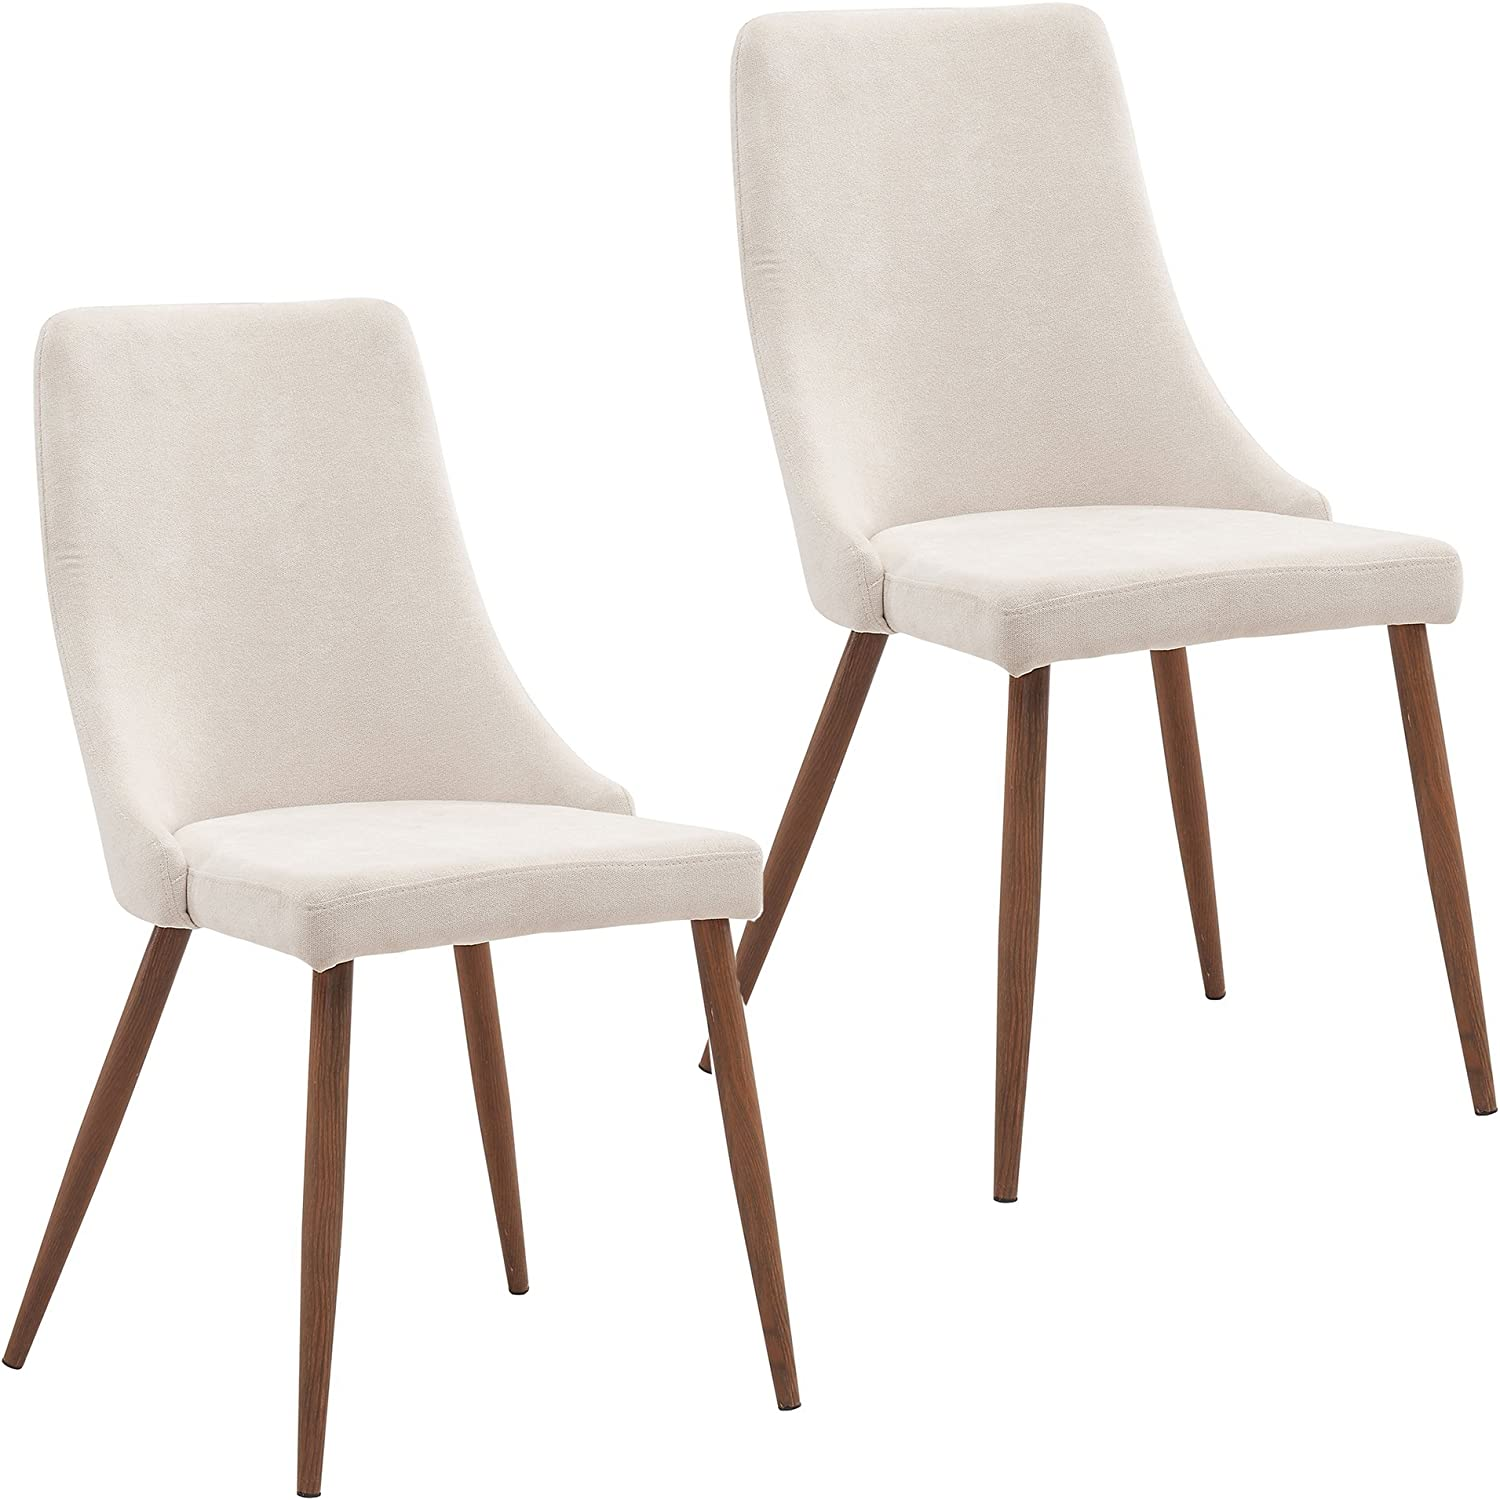 Mila (Set of 2) Fabric and Metal, Mid Century Chair in Beige